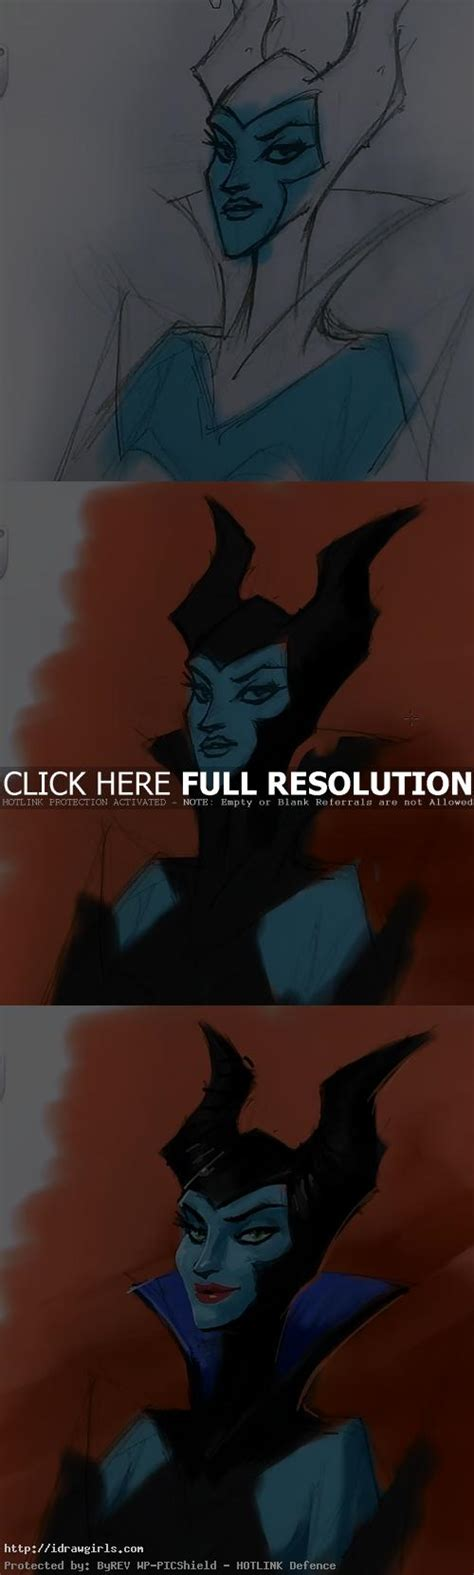 sketchbook pro painting tutorial painting maleficent tutorial using sketchbook pro 6